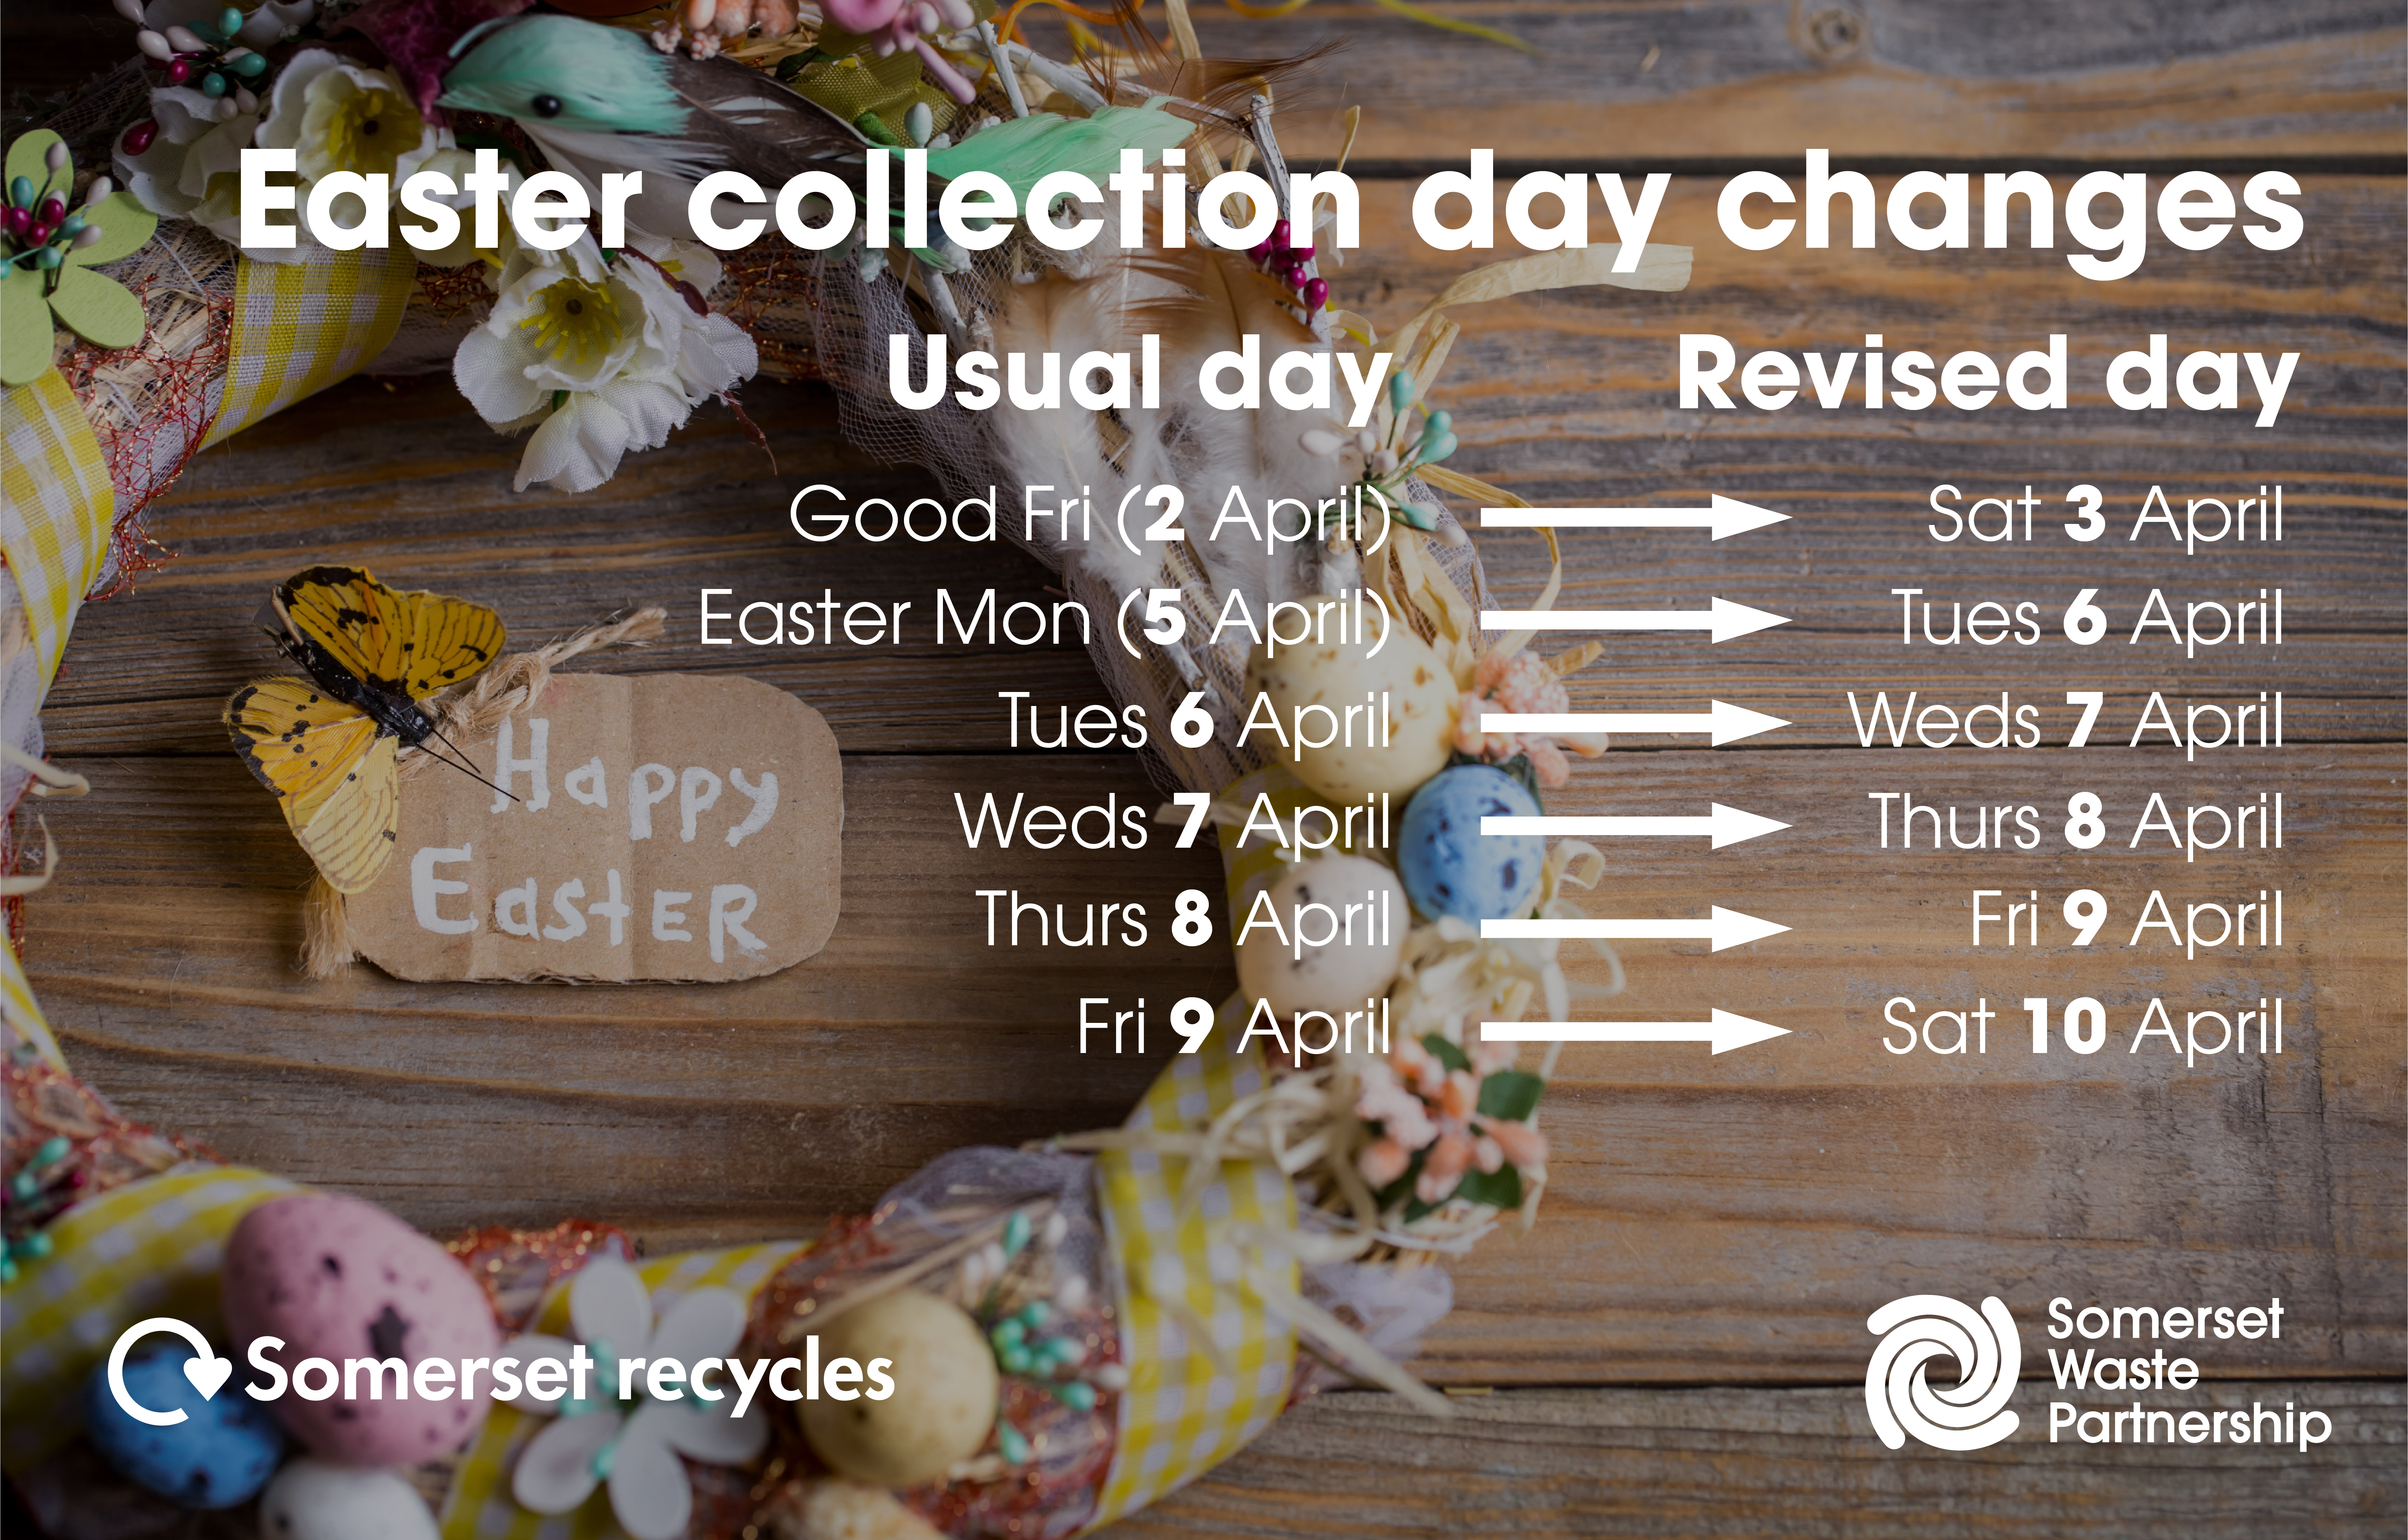 Easter collection day changes. Collections will be one day late.